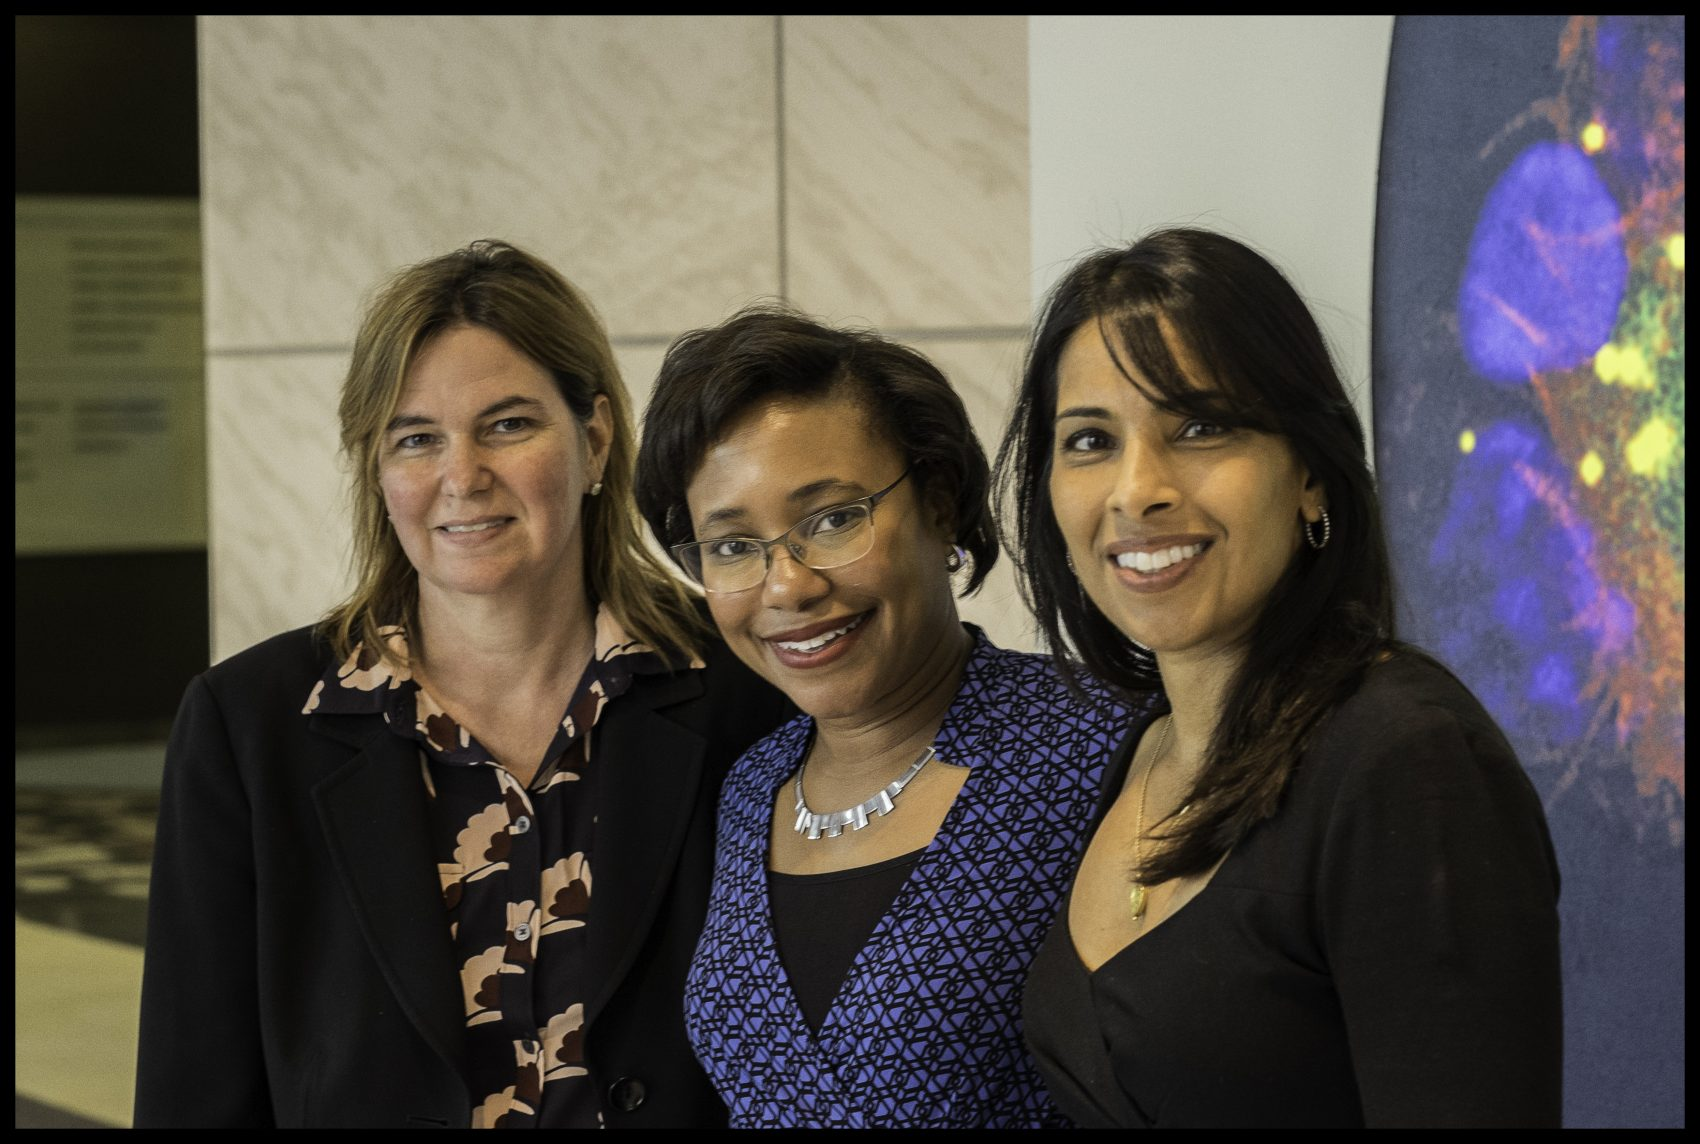 From left to right: Drs. Angela Belcher, Paula Hammond and Sangeeta Bhatia. (Courtesy)